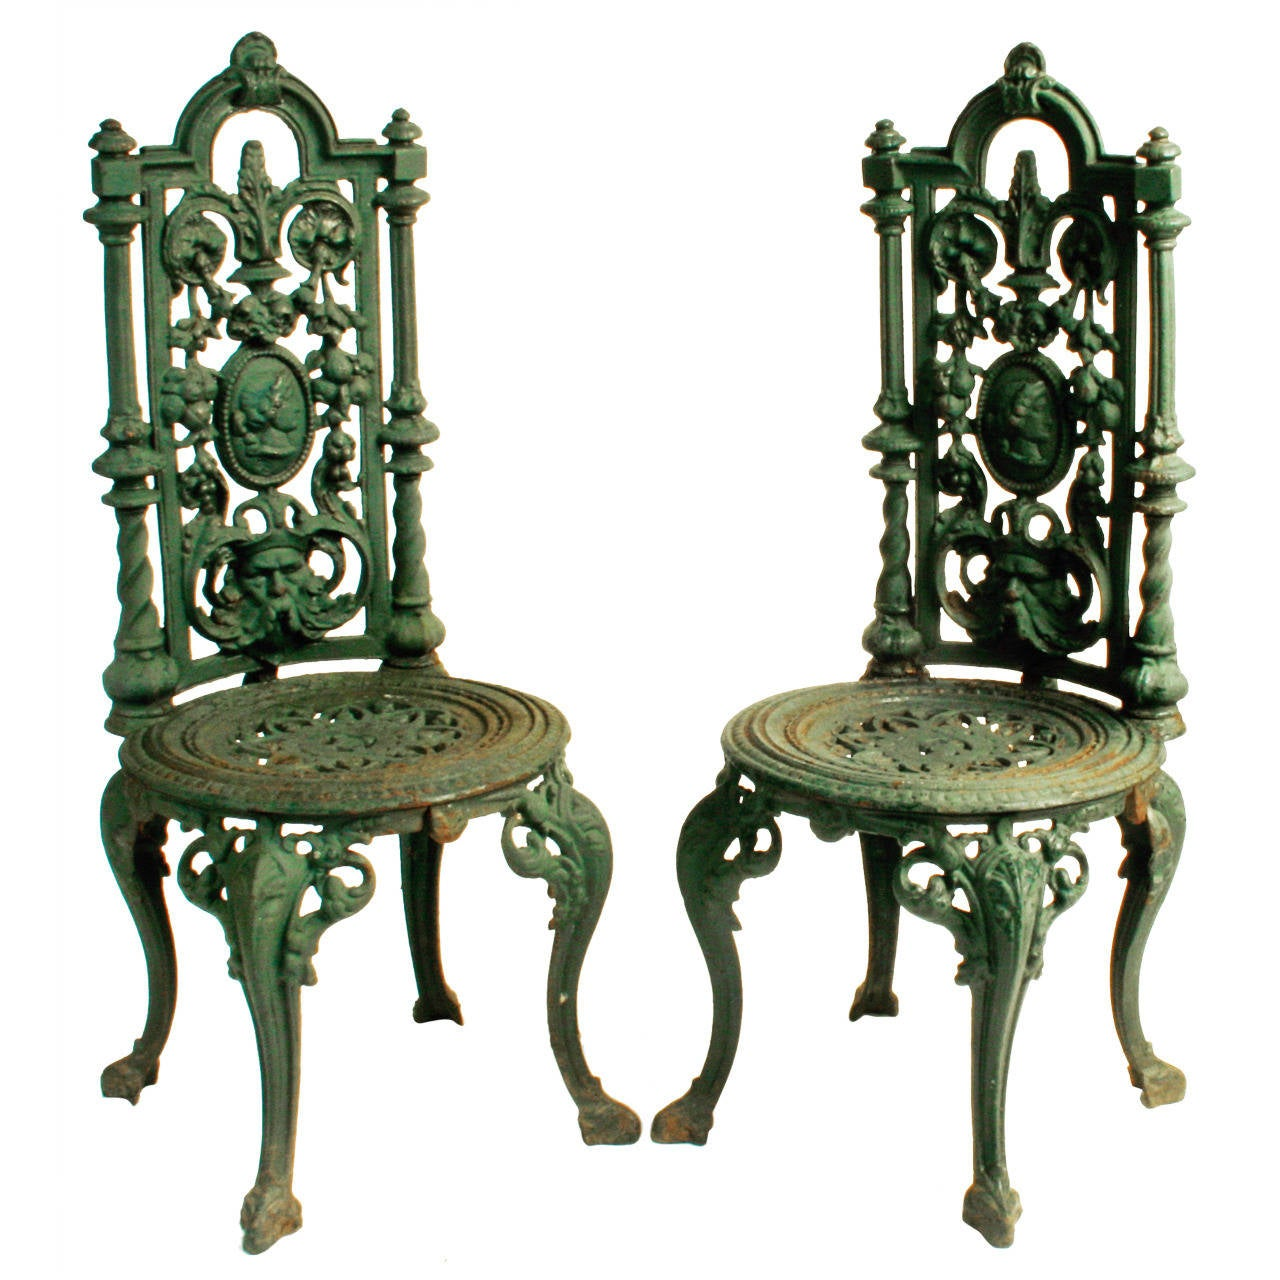 Pair of victorian cast iron garden chairs c1880 at 1stdibs Cast iron garden furniture